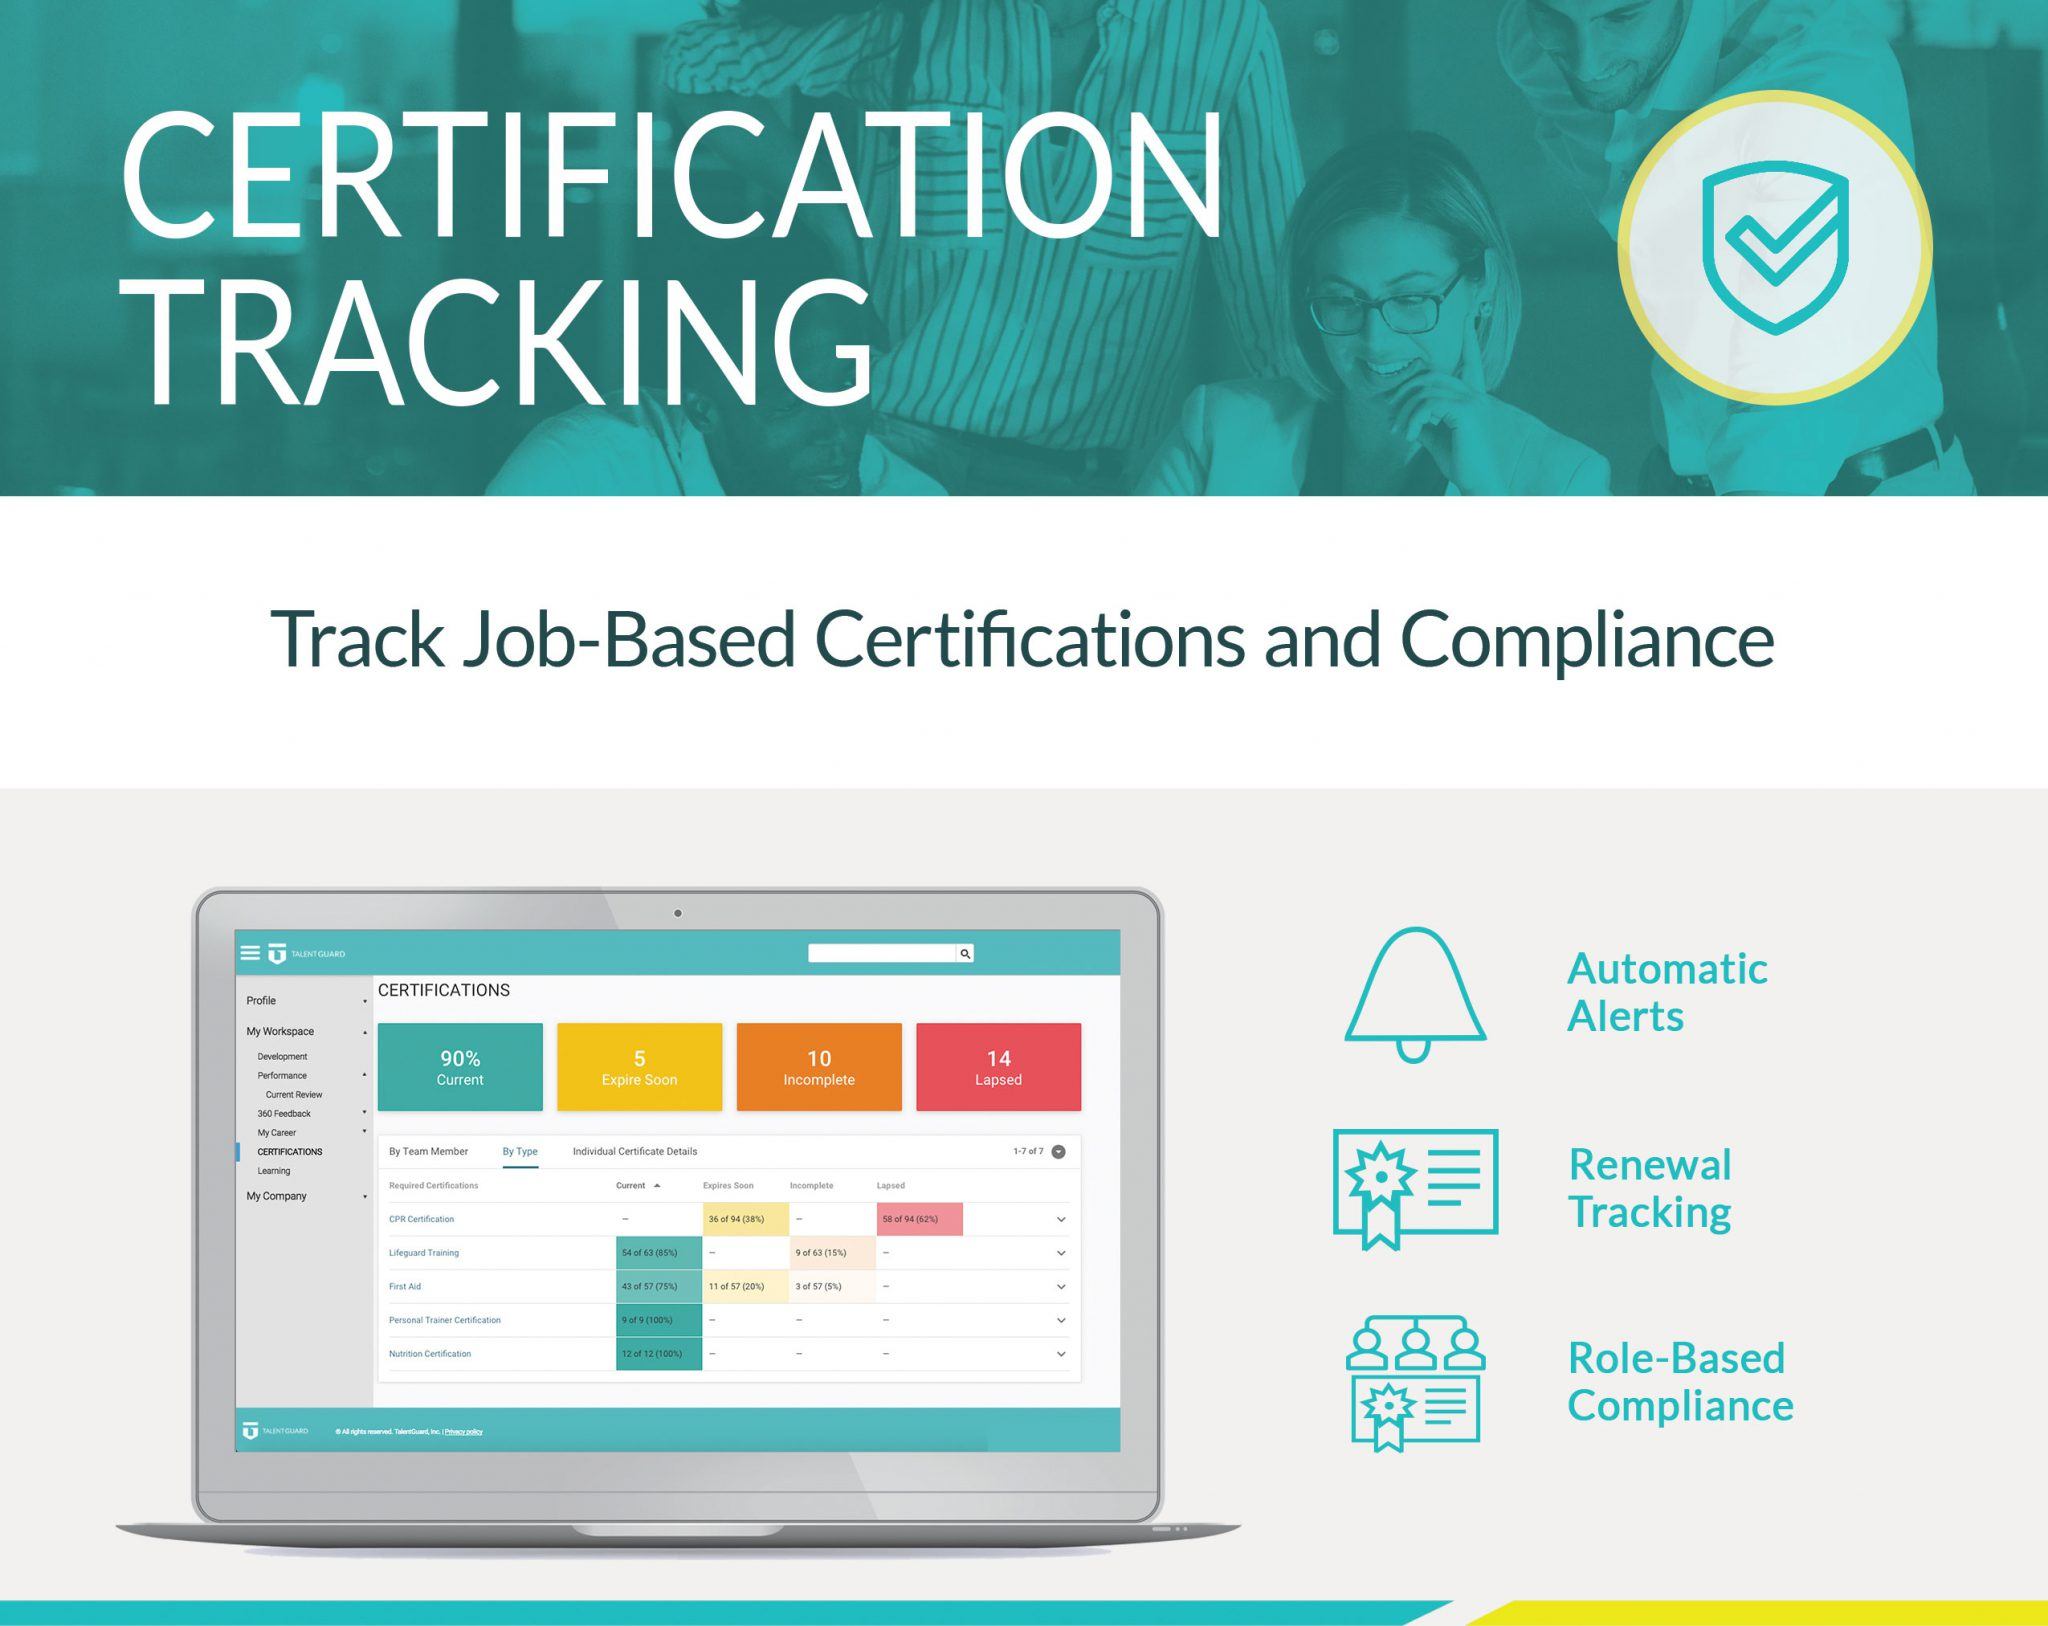 Certification Tracking Collateral